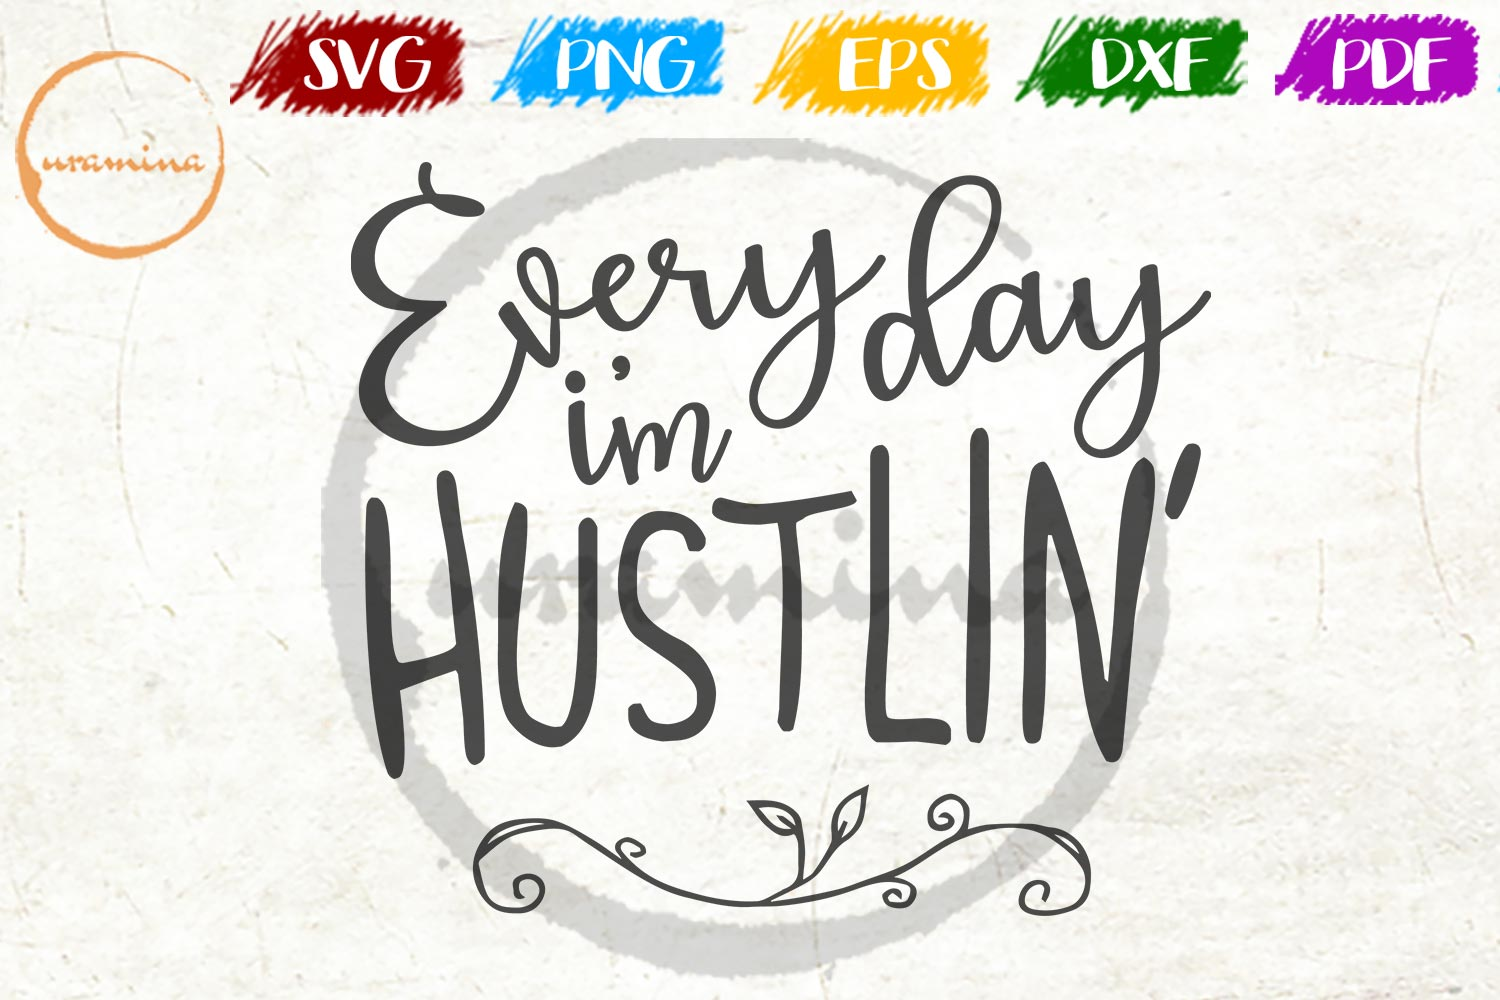 Download Free Everyday I M Hustlin Graphic By Uramina Creative Fabrica for Cricut Explore, Silhouette and other cutting machines.